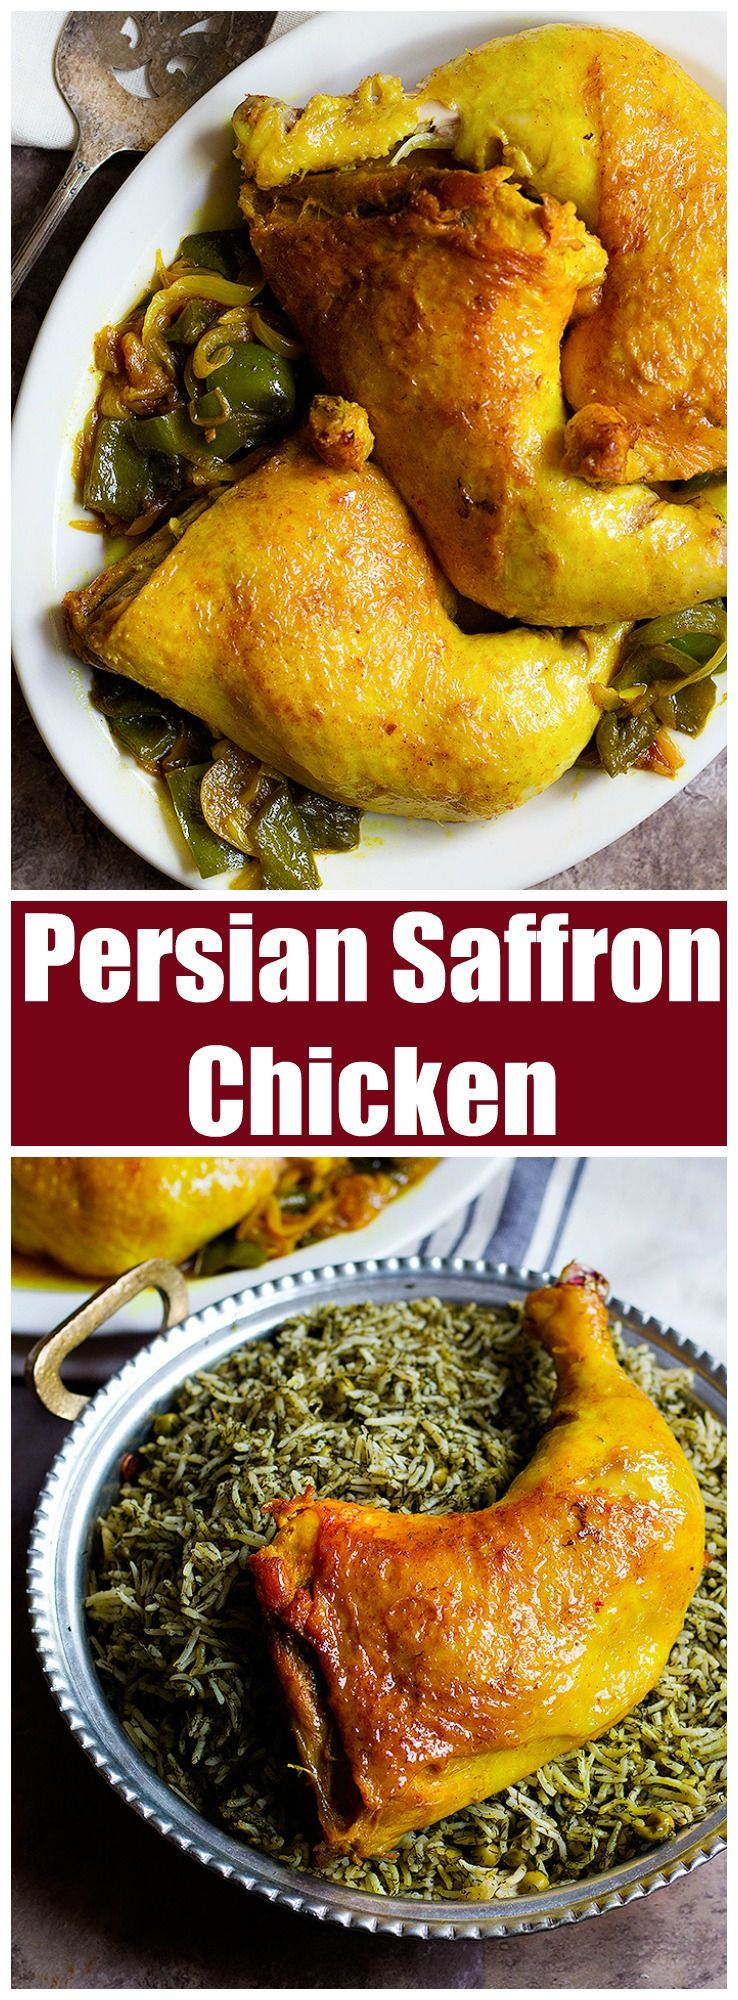 Saffron chicken persian chicken chicken with saffron persian saffron chicken persian chicken chicken with saffron persian chicken recipe persian recipes forumfinder Images